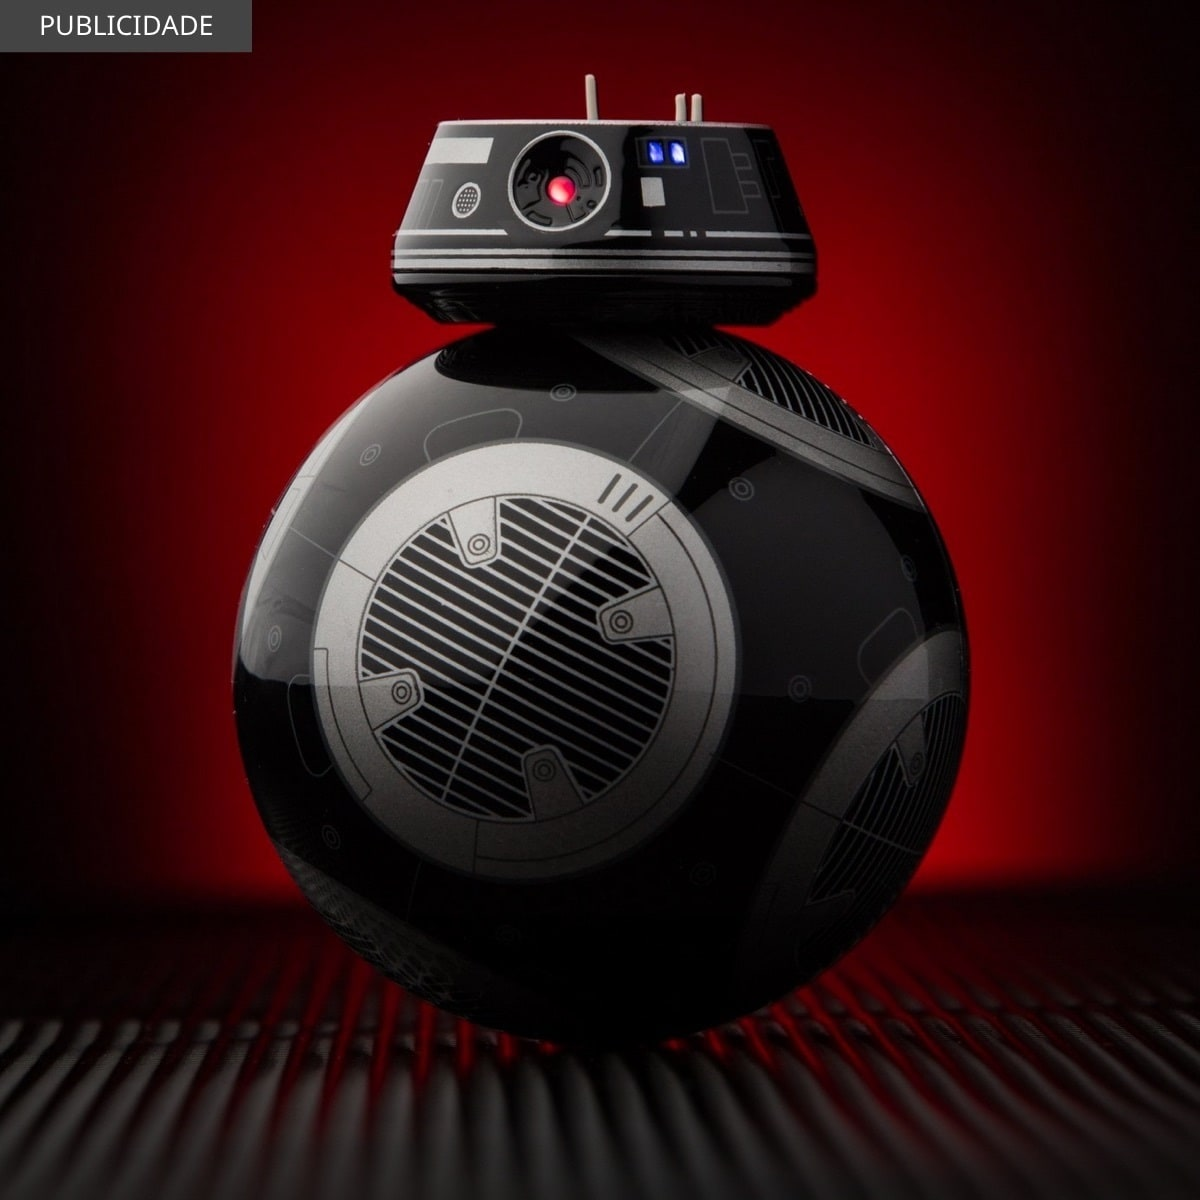 PT - Star Wars The Last Jedi - Featured Product - BB9E Sphero - Flex Grid Object - Square